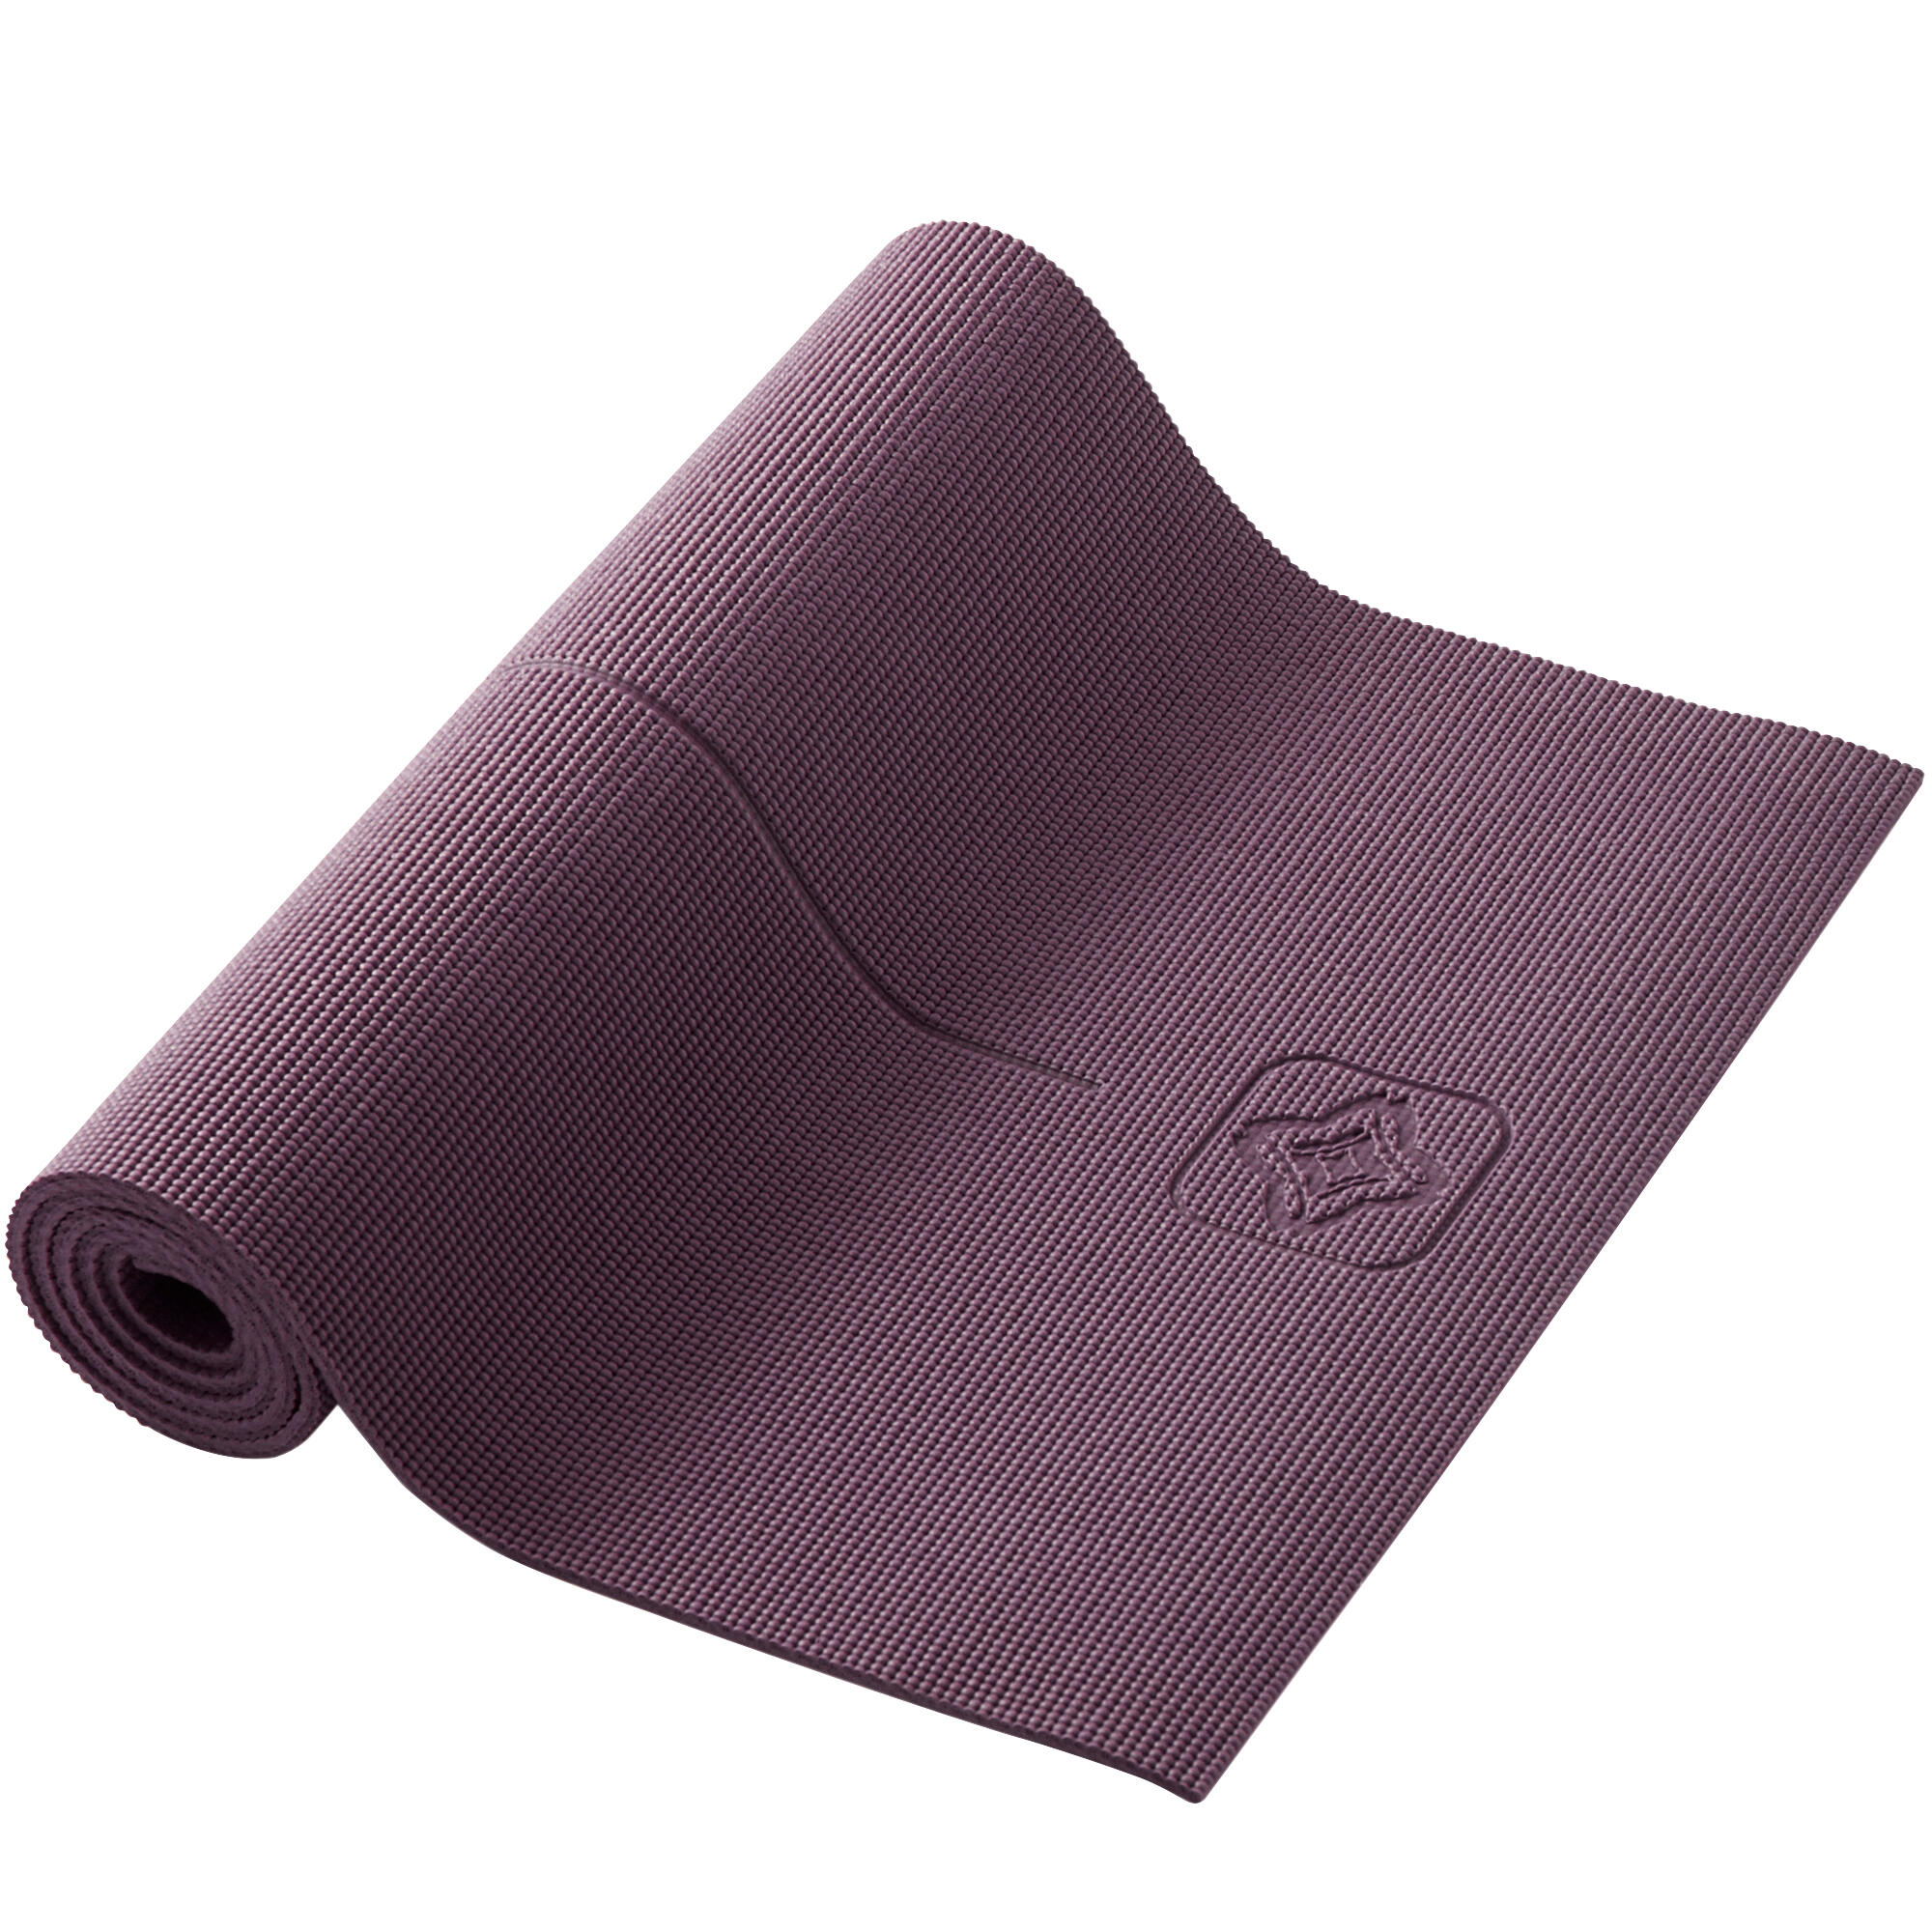 Tappetino Yoga Decatlon Accessori Tappetino Yoga Comfort 8mm Bordeaux